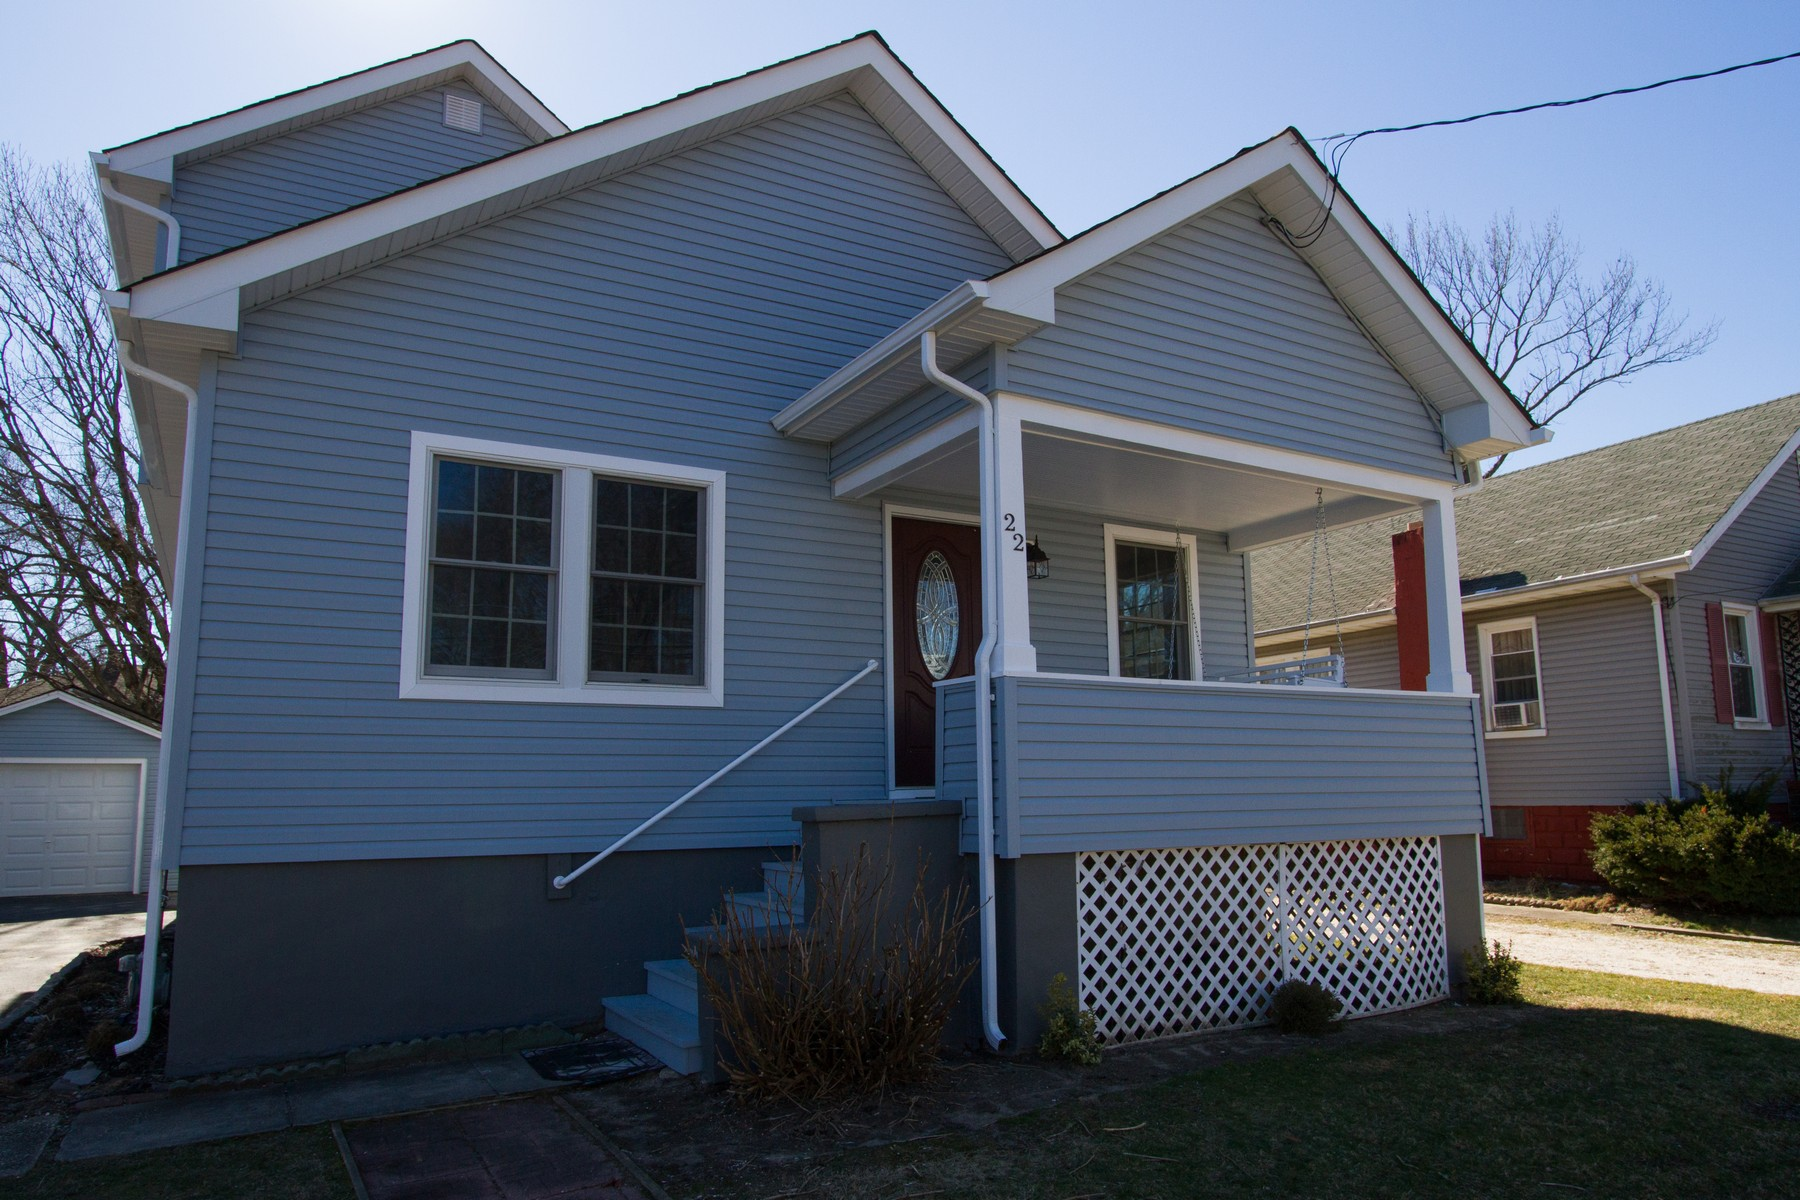 Single Family Home for Sale at Each home needs a proper frame 22 Airsdale Avenue Long Branch, New Jersey 07740 United States